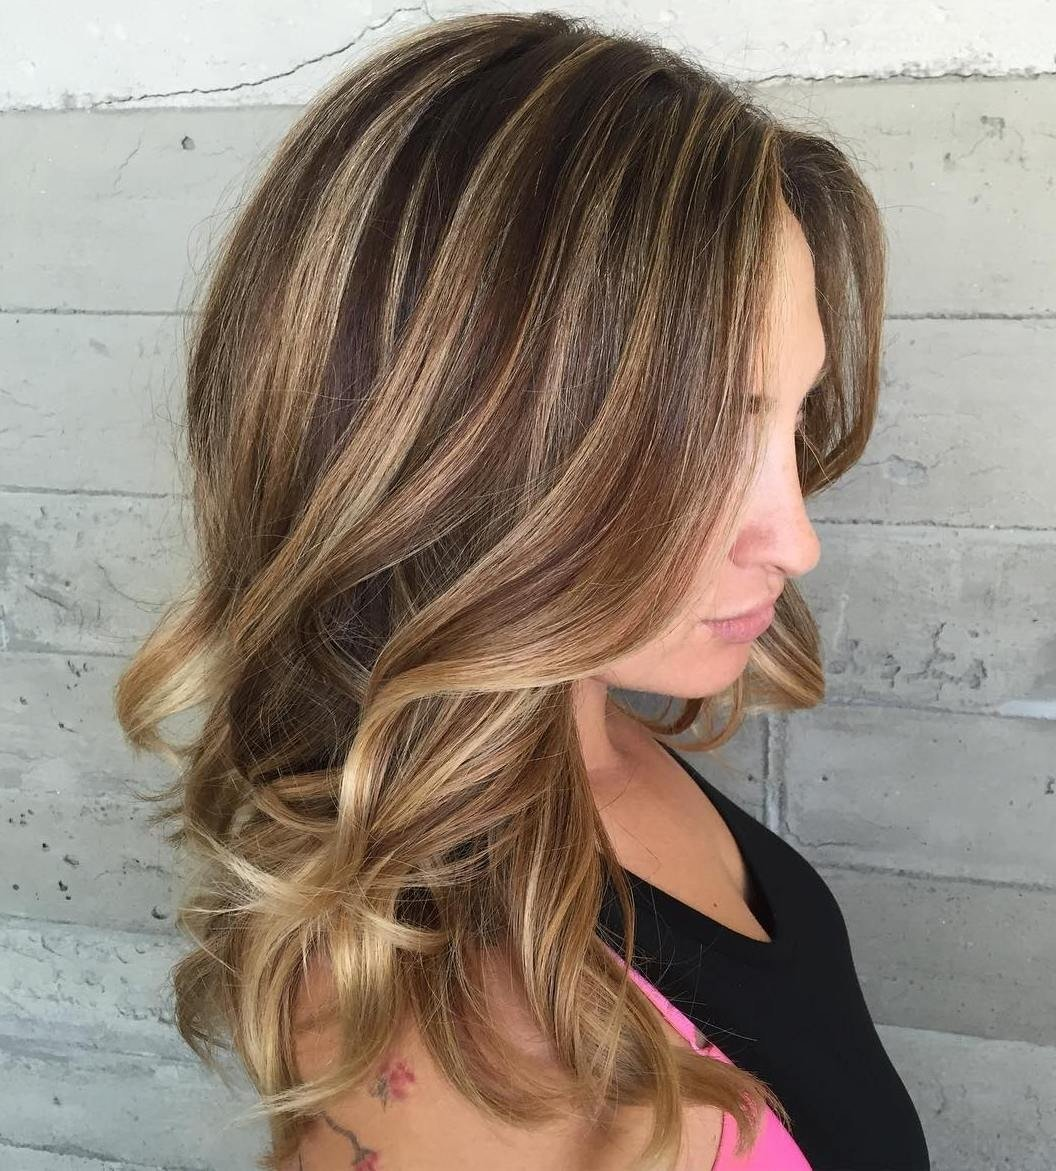 10 Amazing Brown And Blonde Hair Color Ideas 45 light brown hair color ideas light brown hair with highlights 5